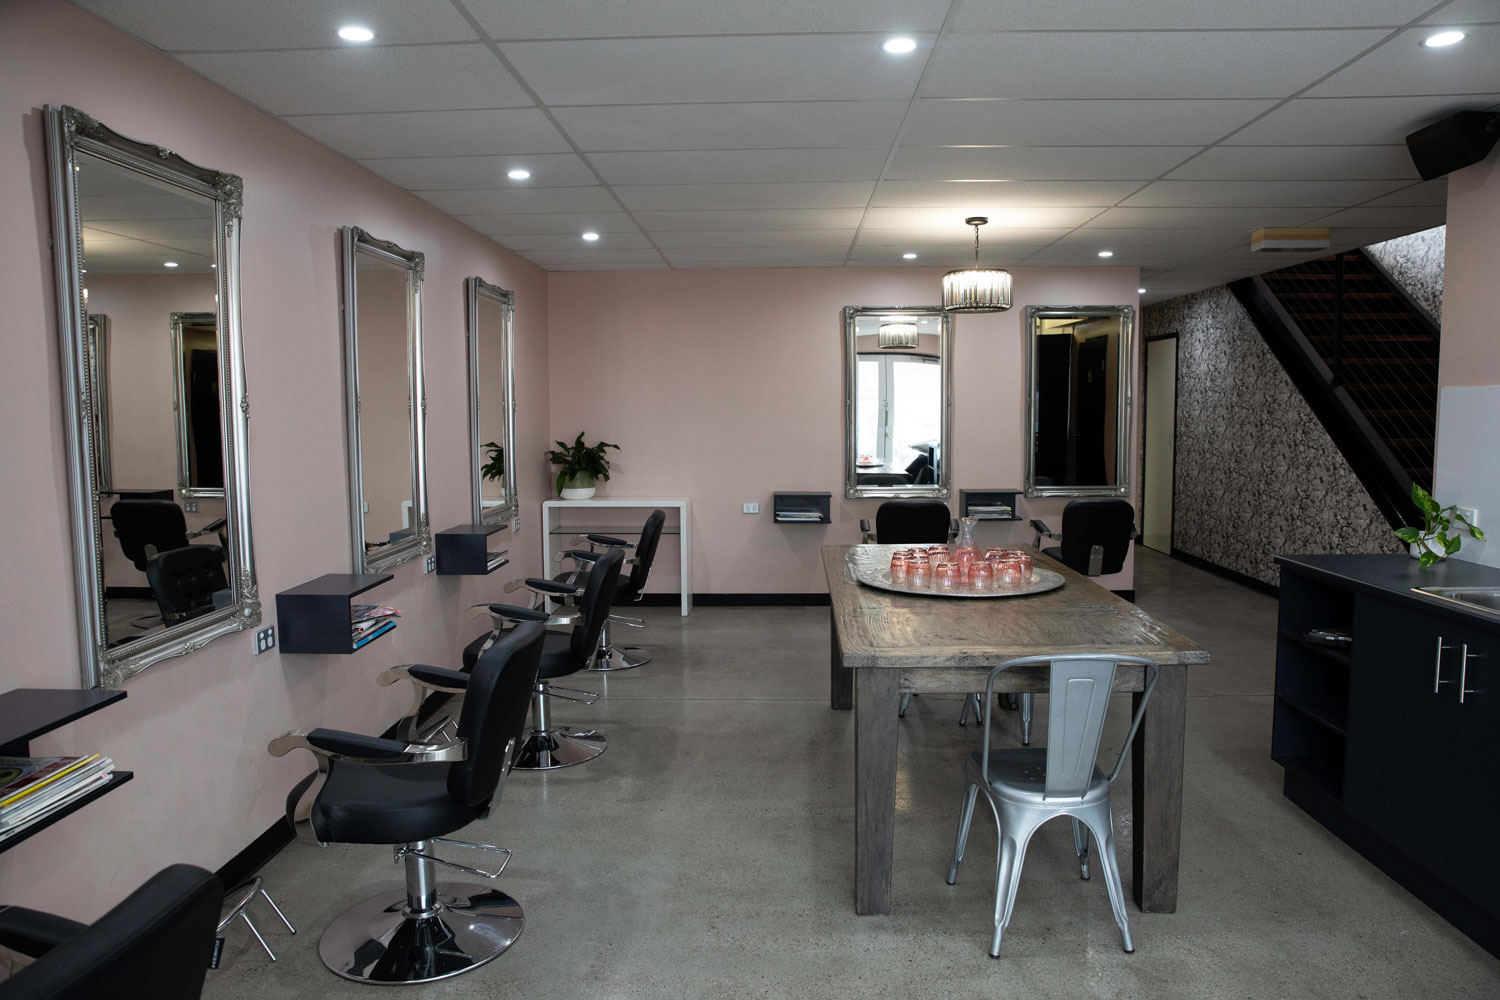 bhair salon basement salon